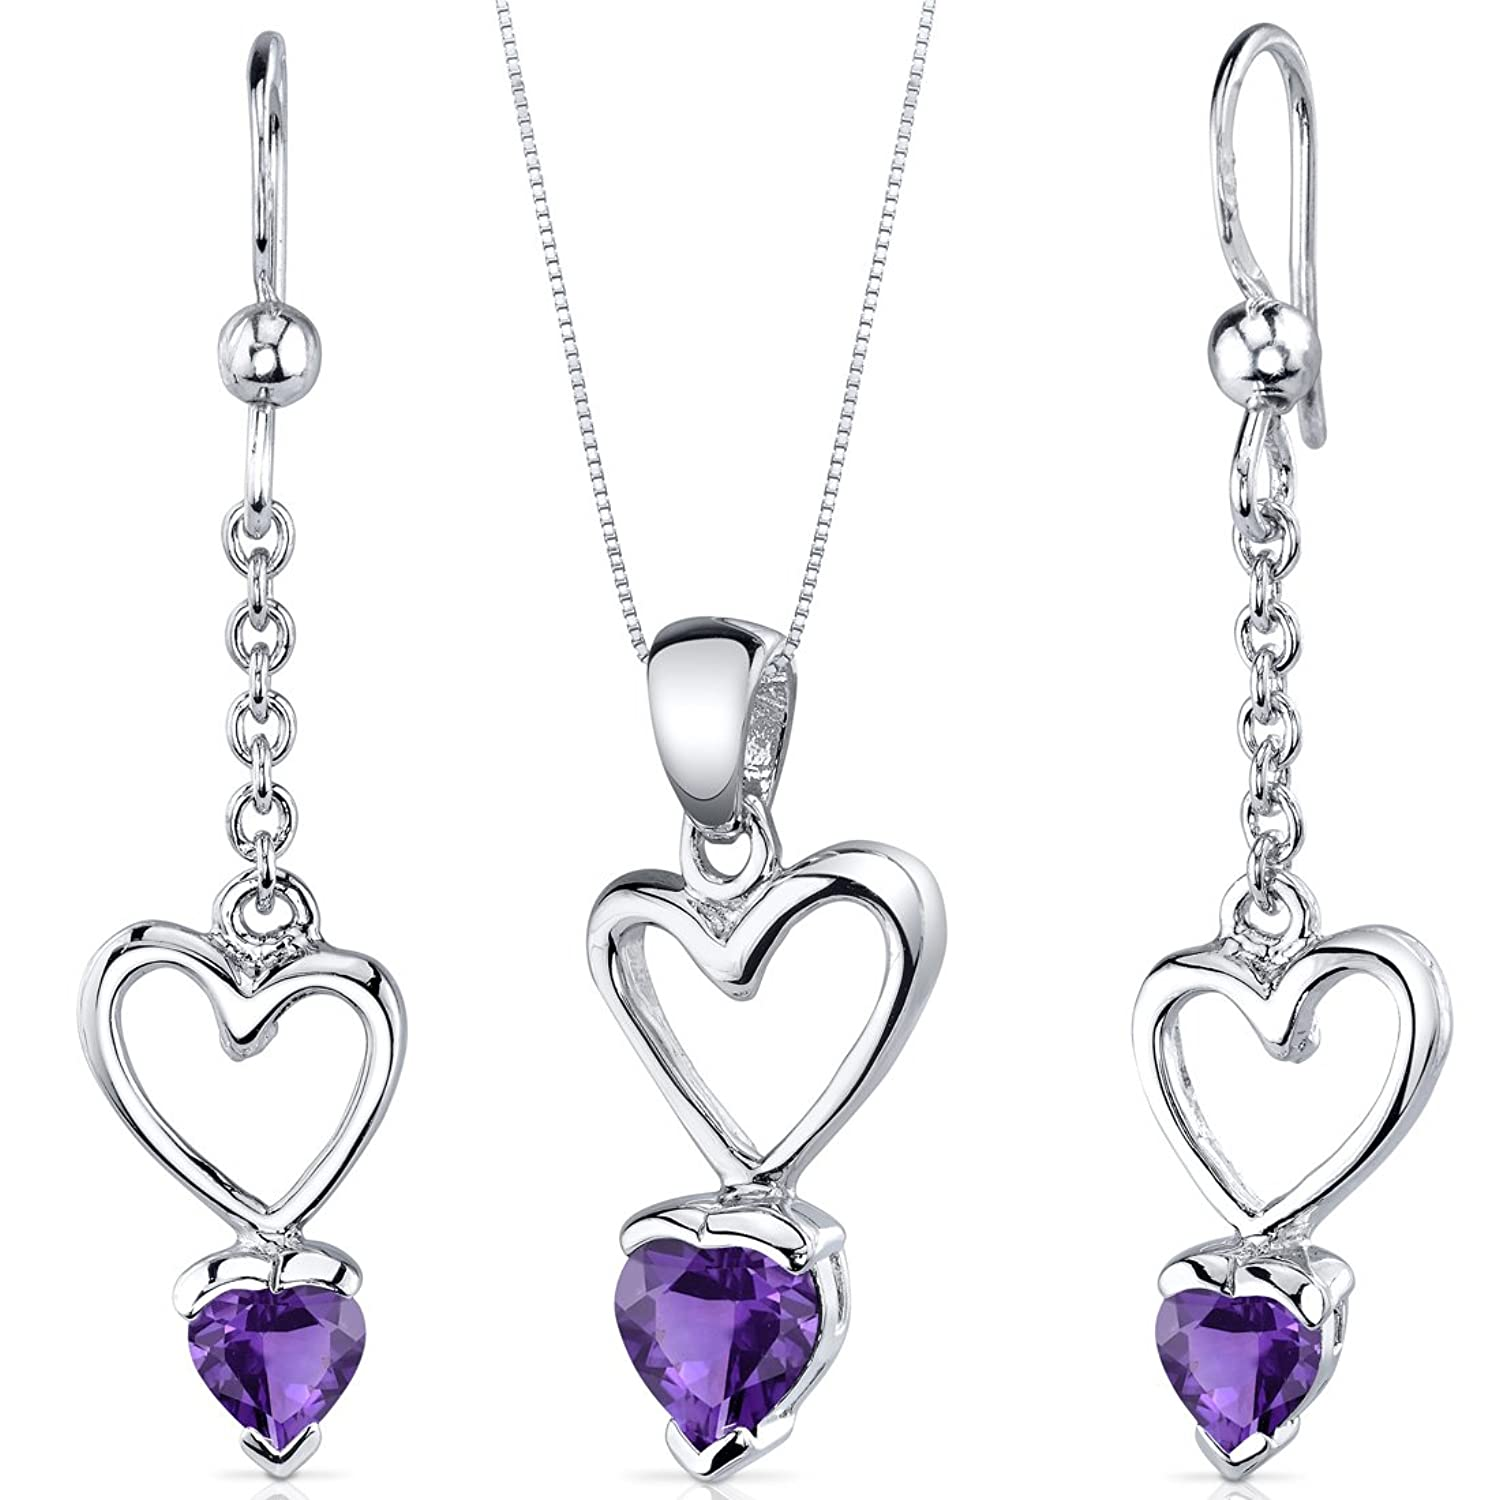 Amethyst Pendant Earrings Necklace Set Sterling Silver Heart Shape 1.75 Carats